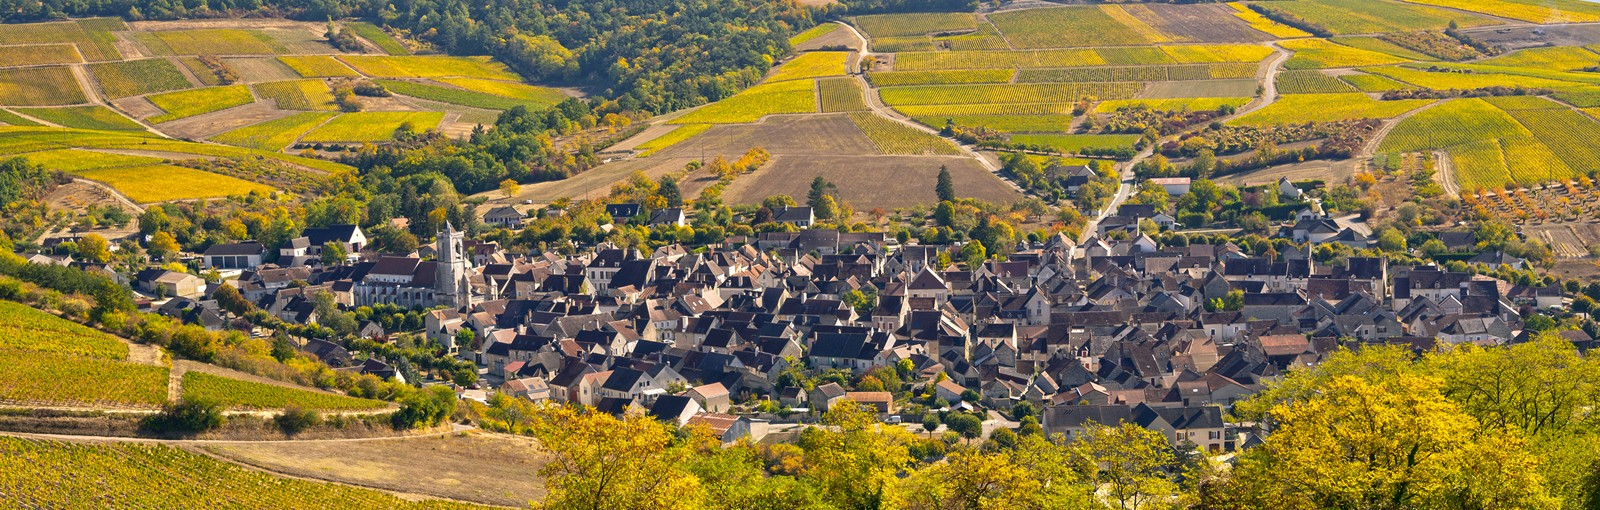 Tours 2 days in Burgundy: Tour of the Yonne and Côtes de Beaune Wine Route - Burgundy - Multiday tours from Paris